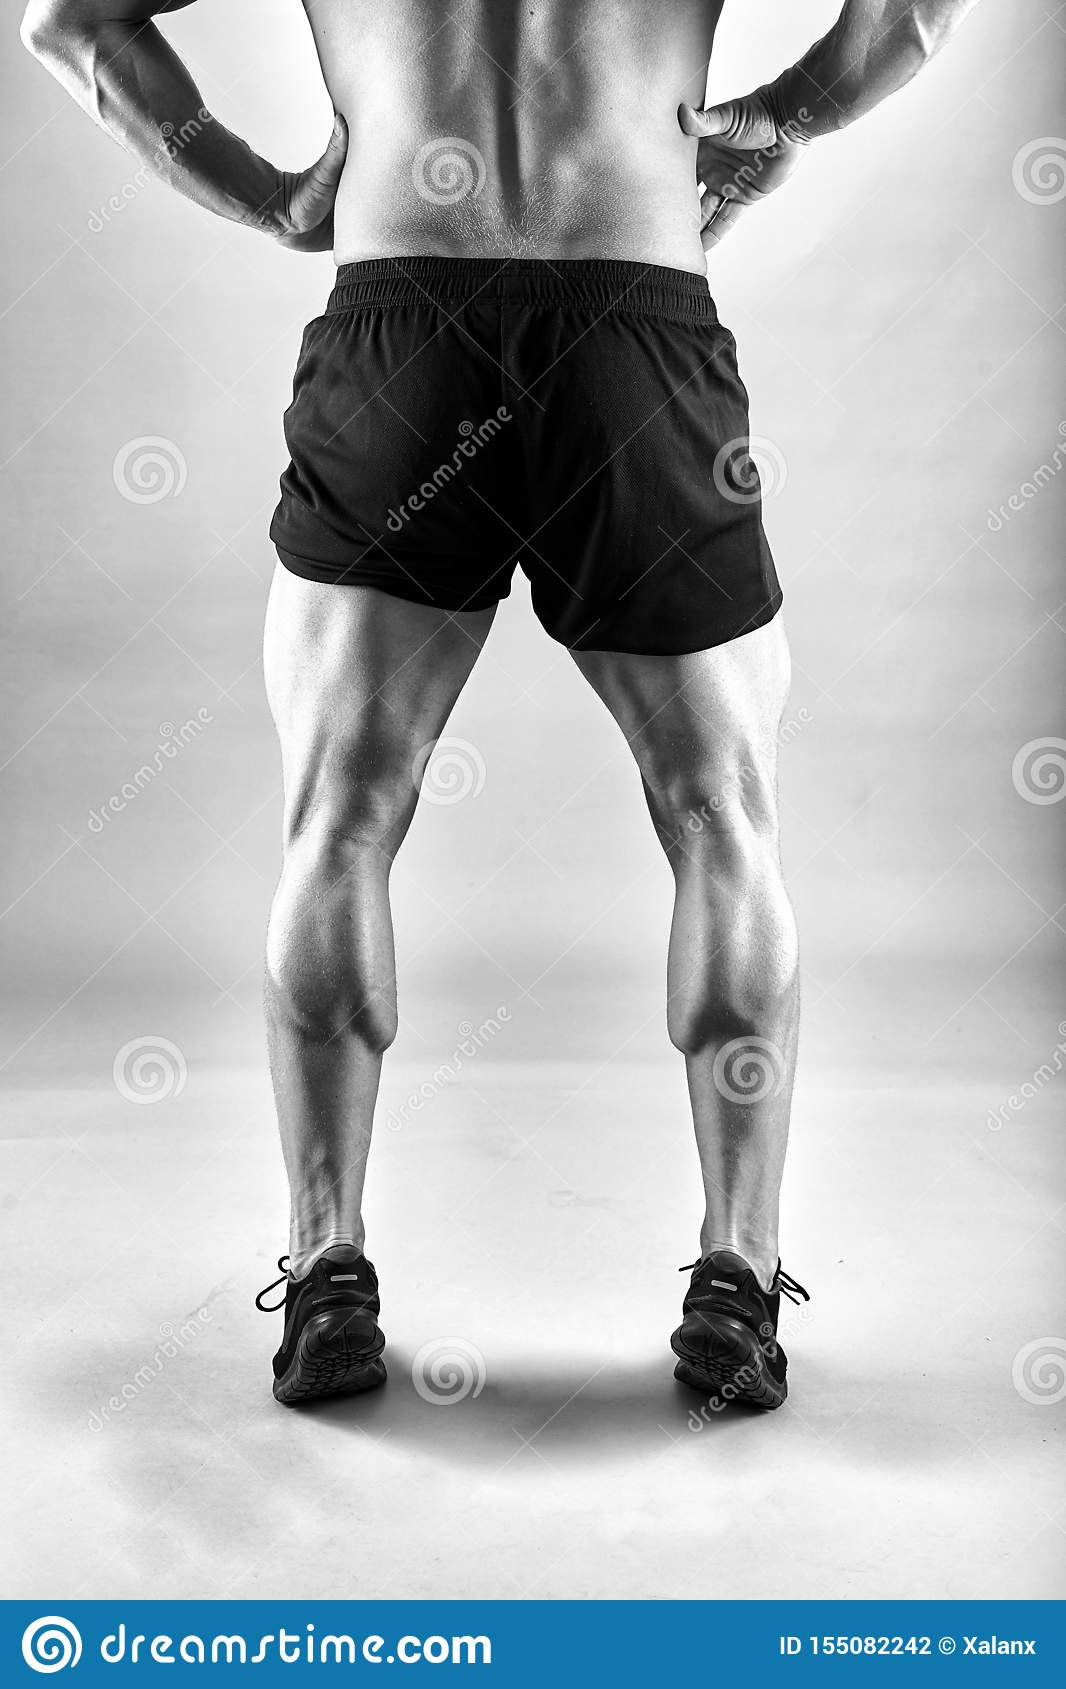 Strong male legs stock photo. Image of athlete, muscles